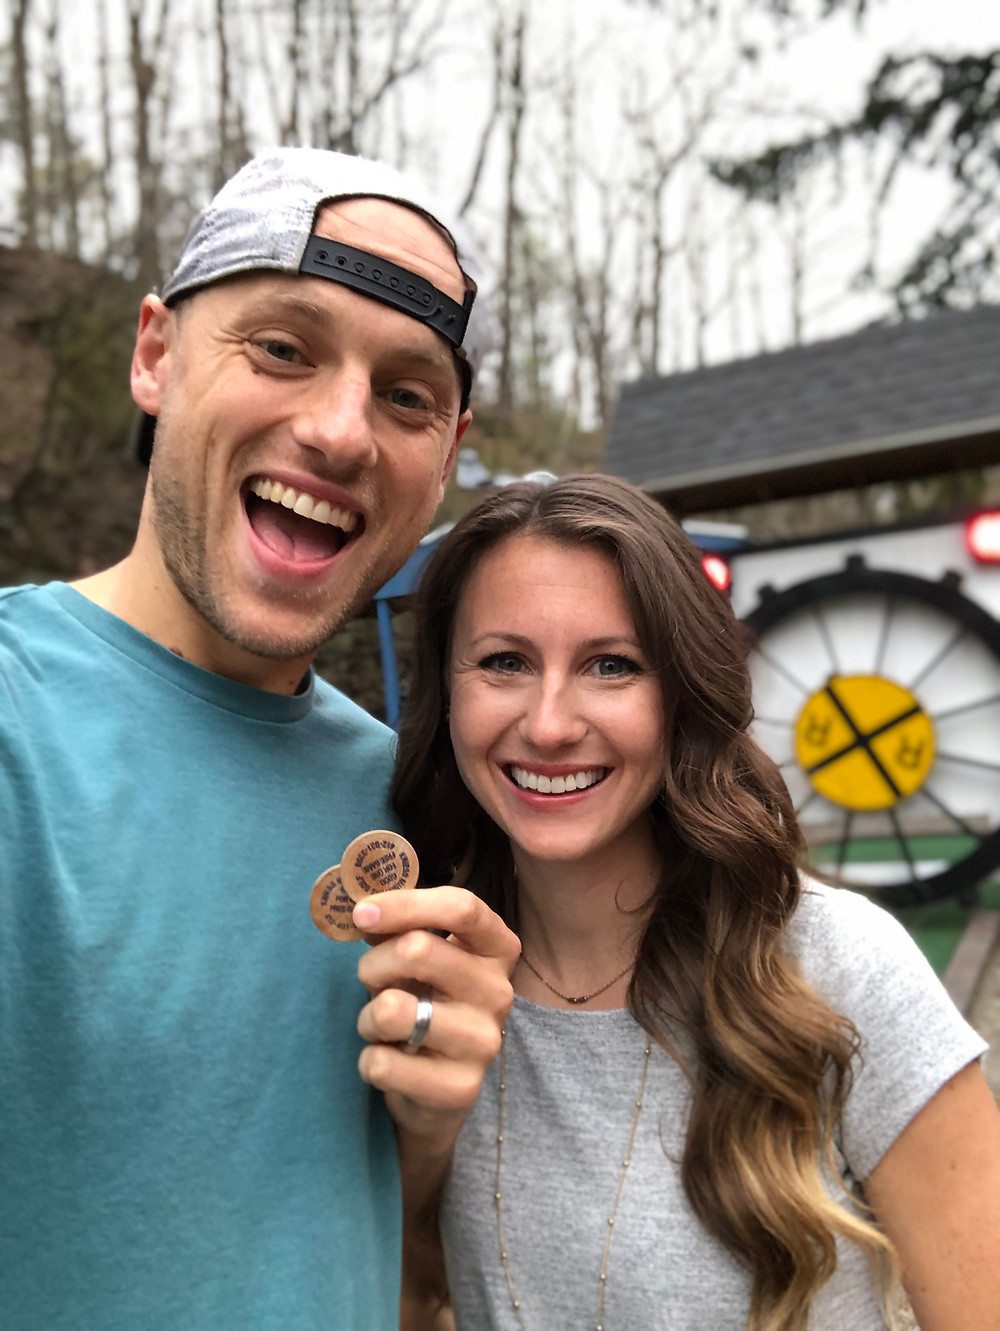 young married couple out for a fun date night playing mini golf in pittsburgh, pennsylvania